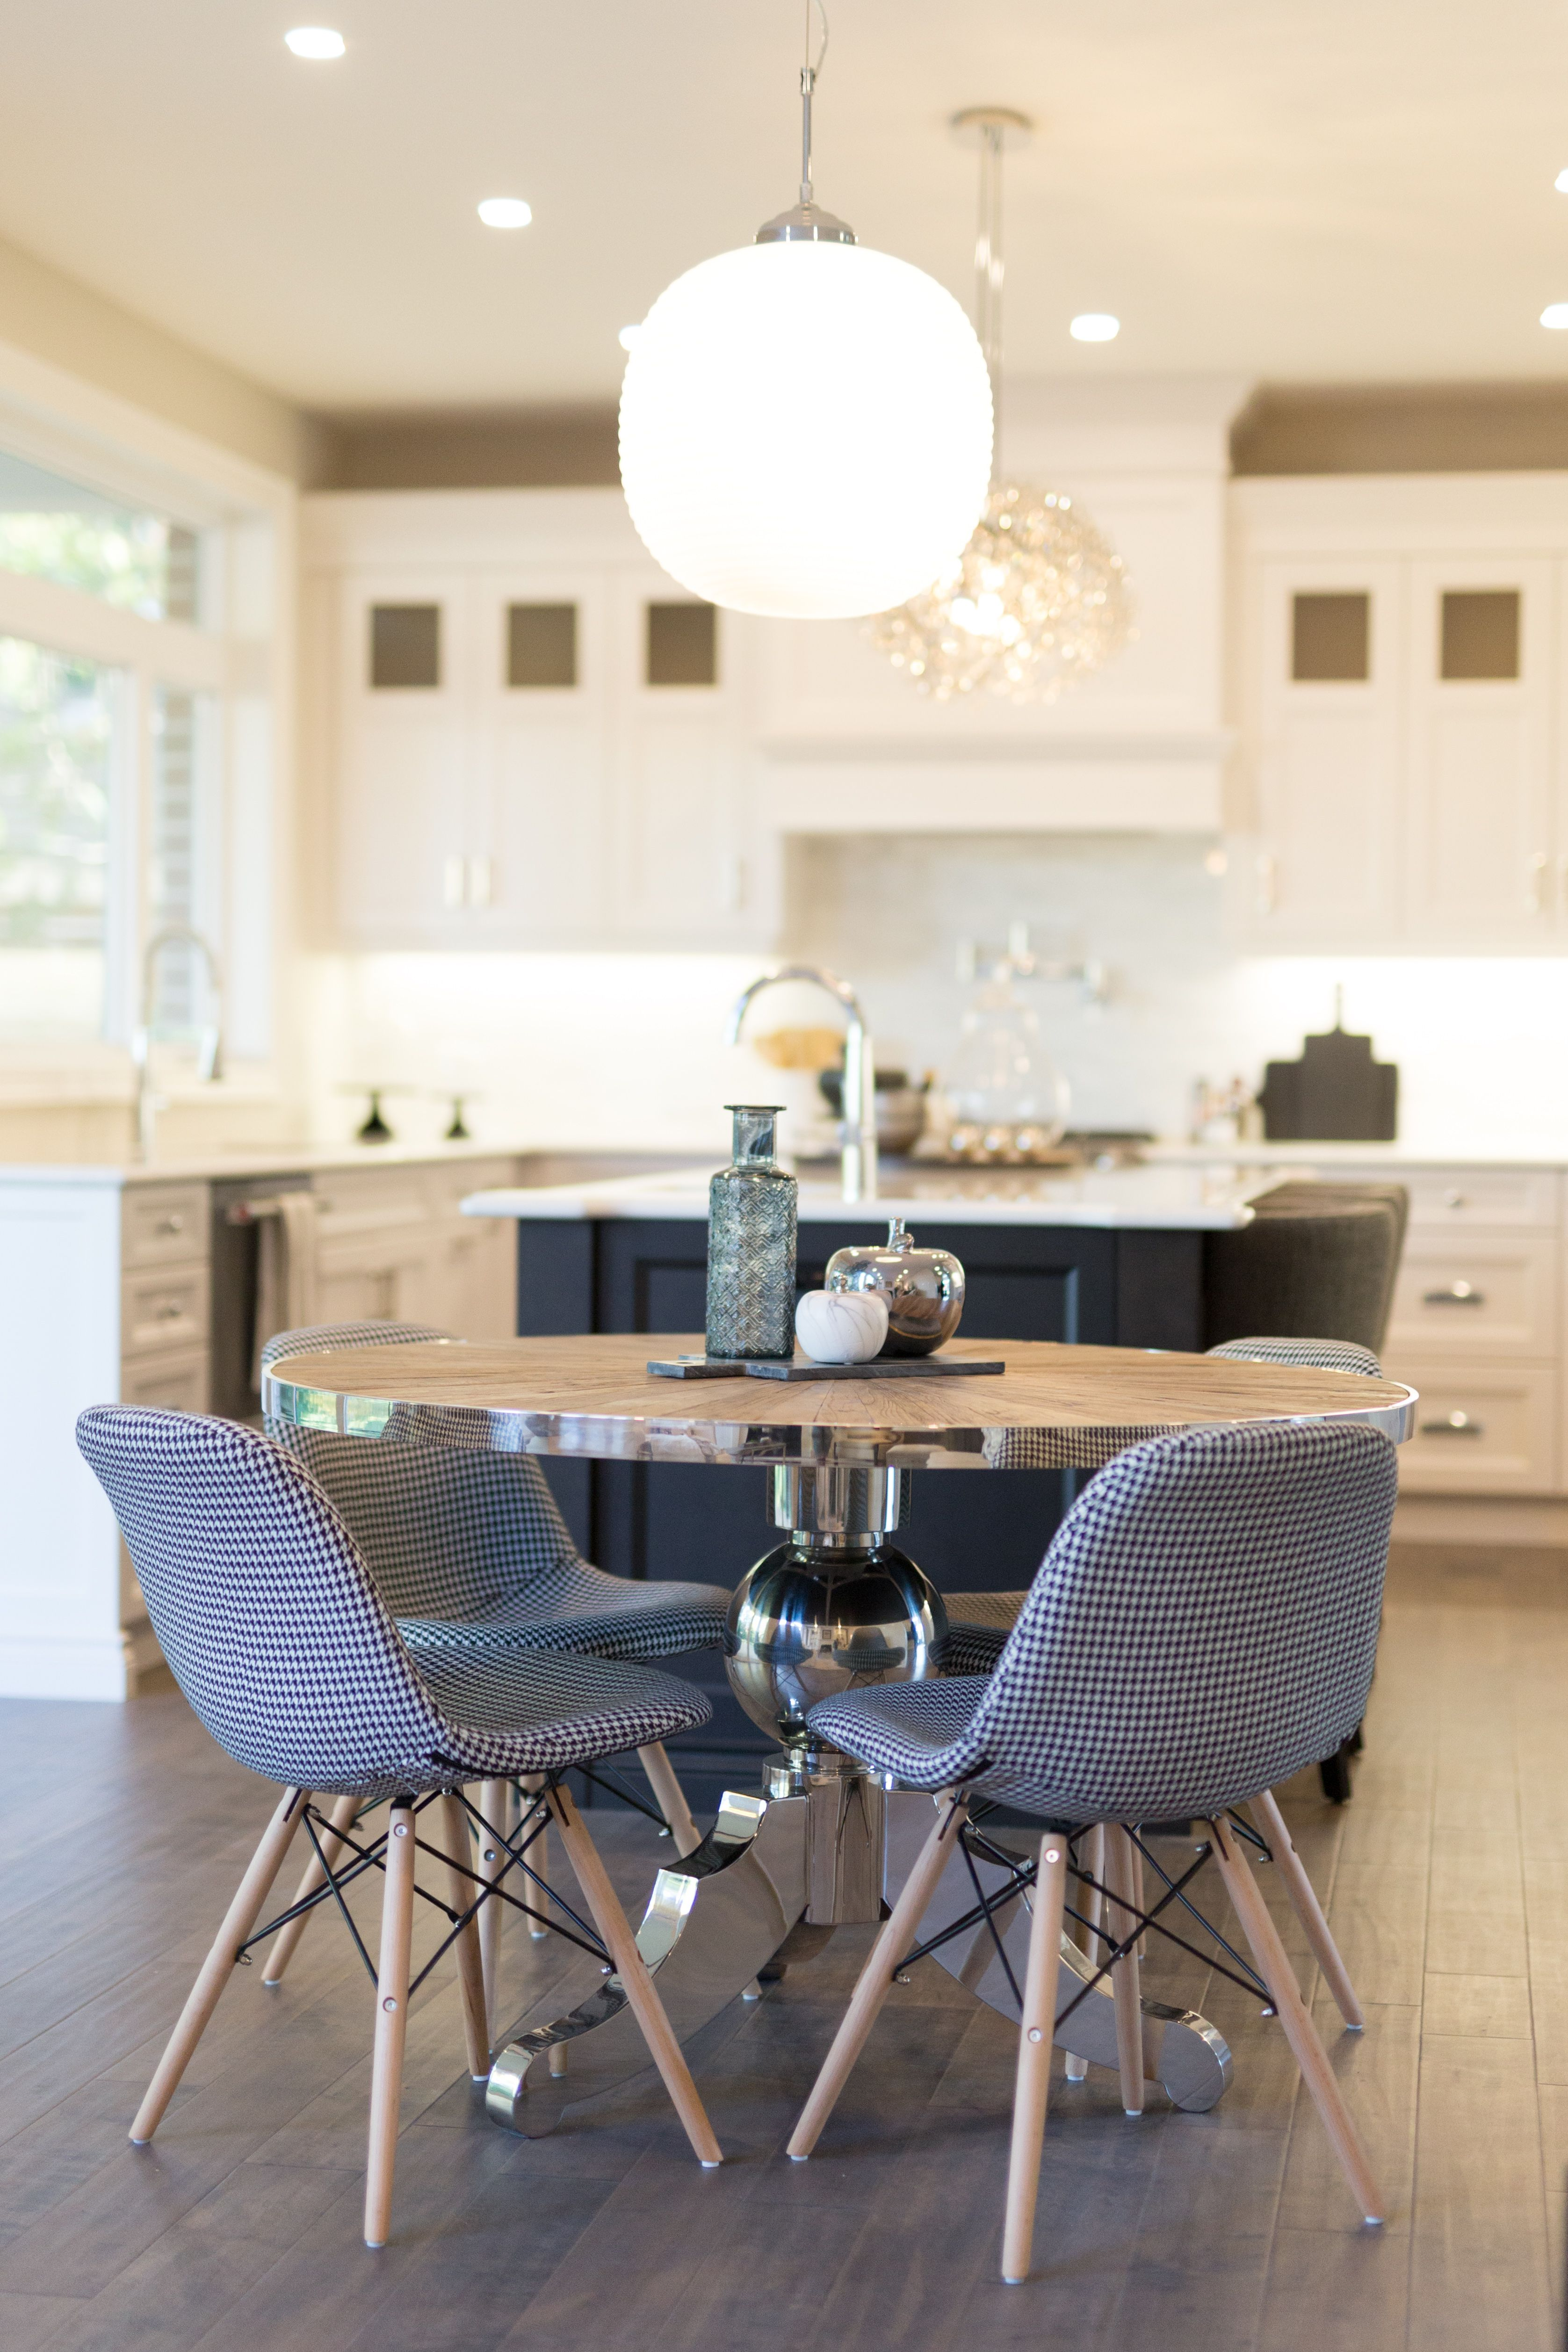 Dream Kitchen Staging Done Right c/o Plum Staging & Decor | Plum ...